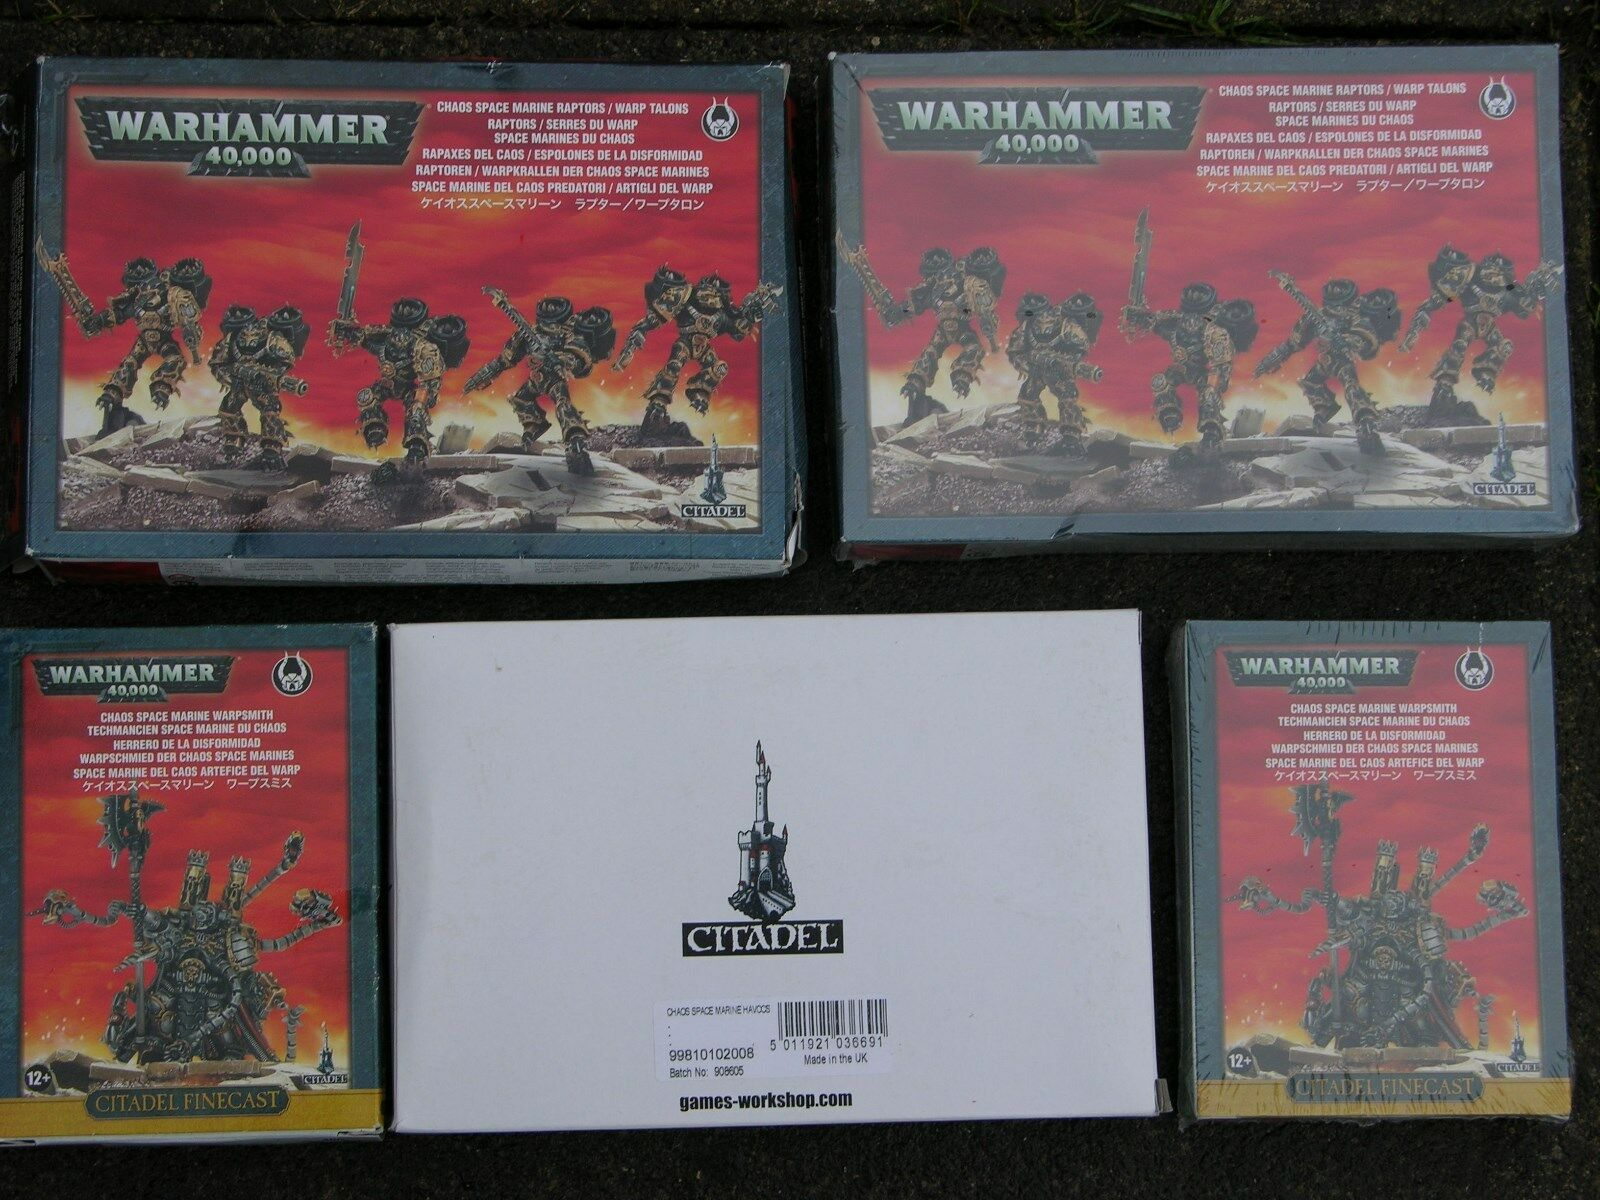 WH40K CHAOS SPACE MARINE BOX SETS, MULTI-LISTING